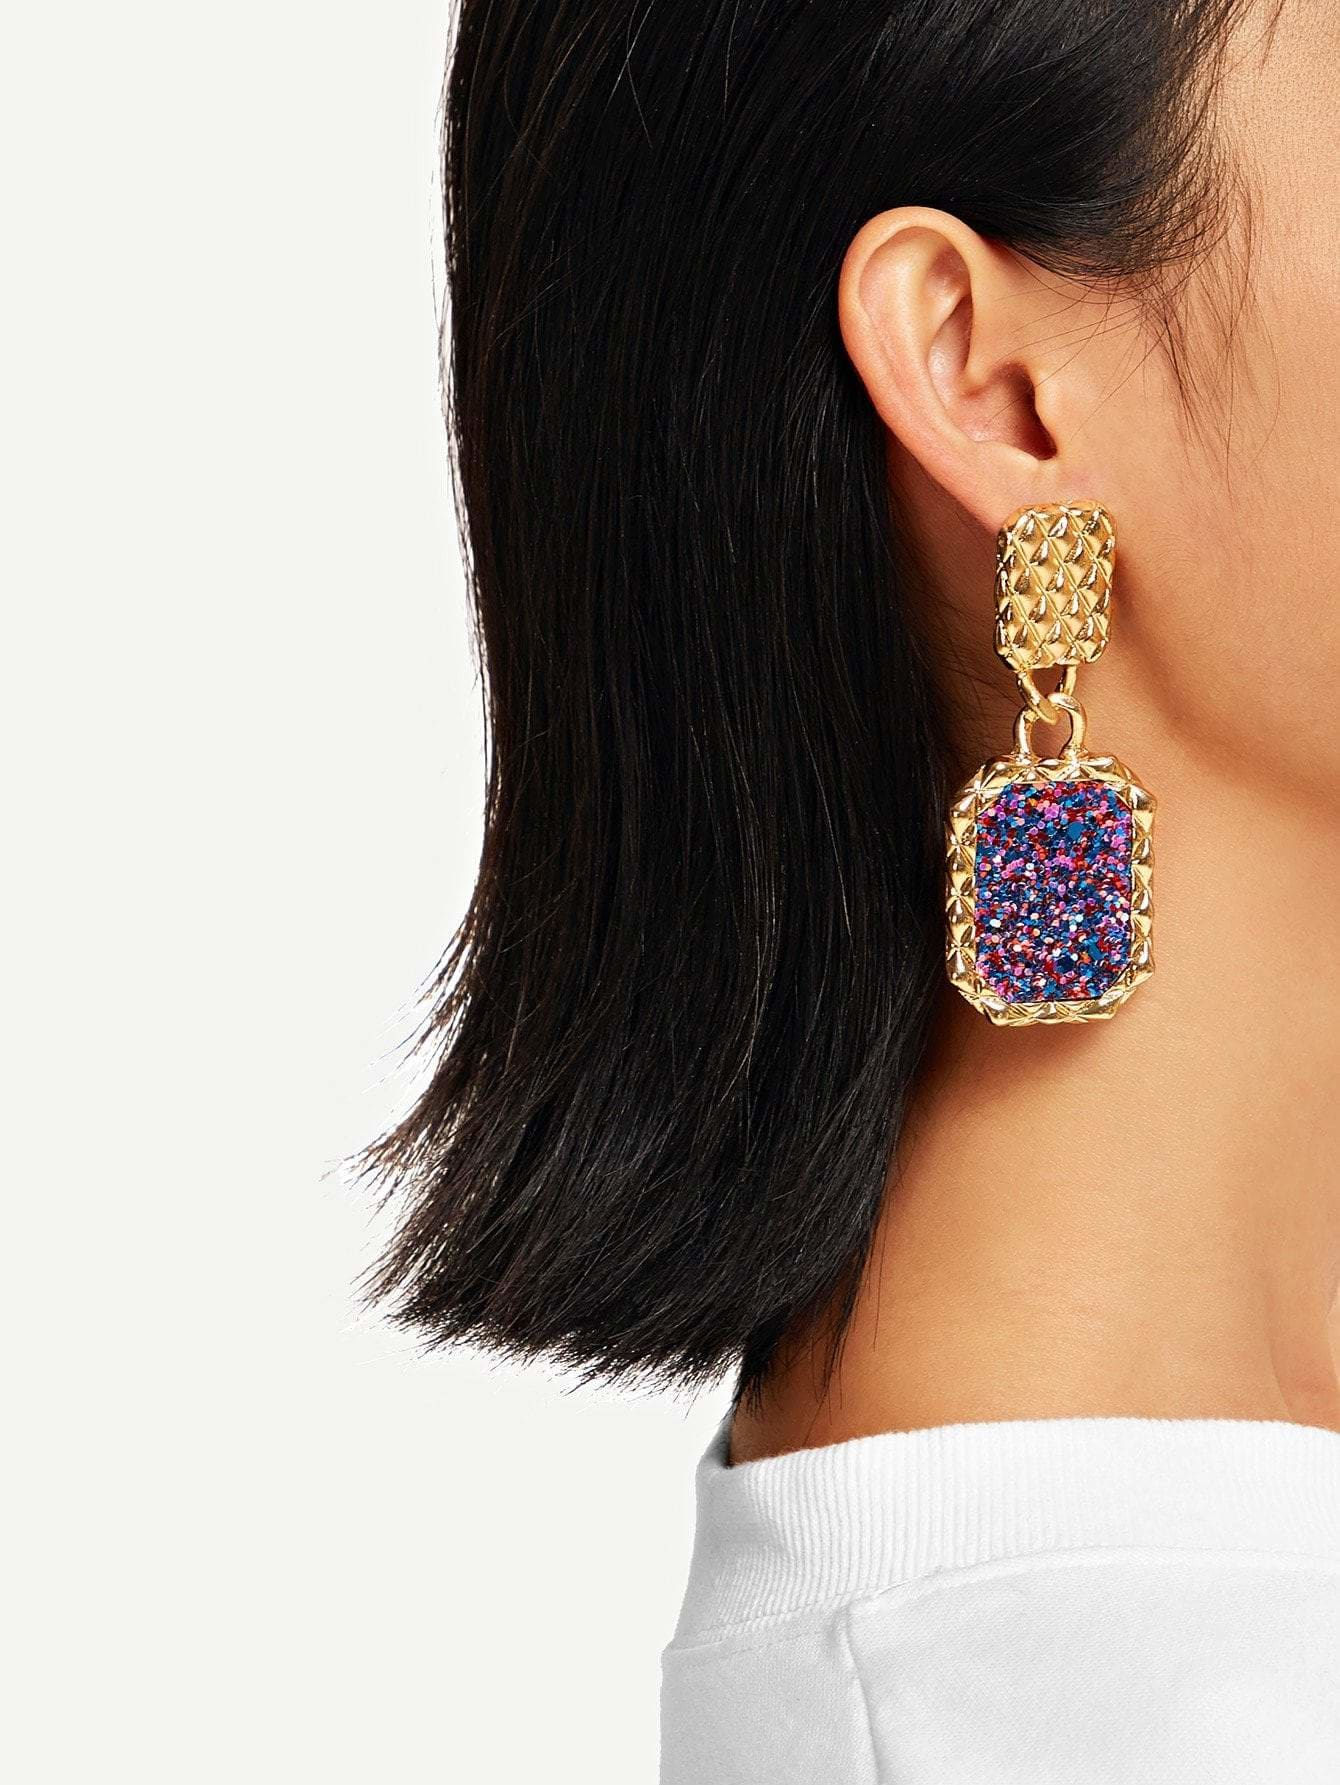 Snakeskin Pattern Textured Drop Earrings - Earrings